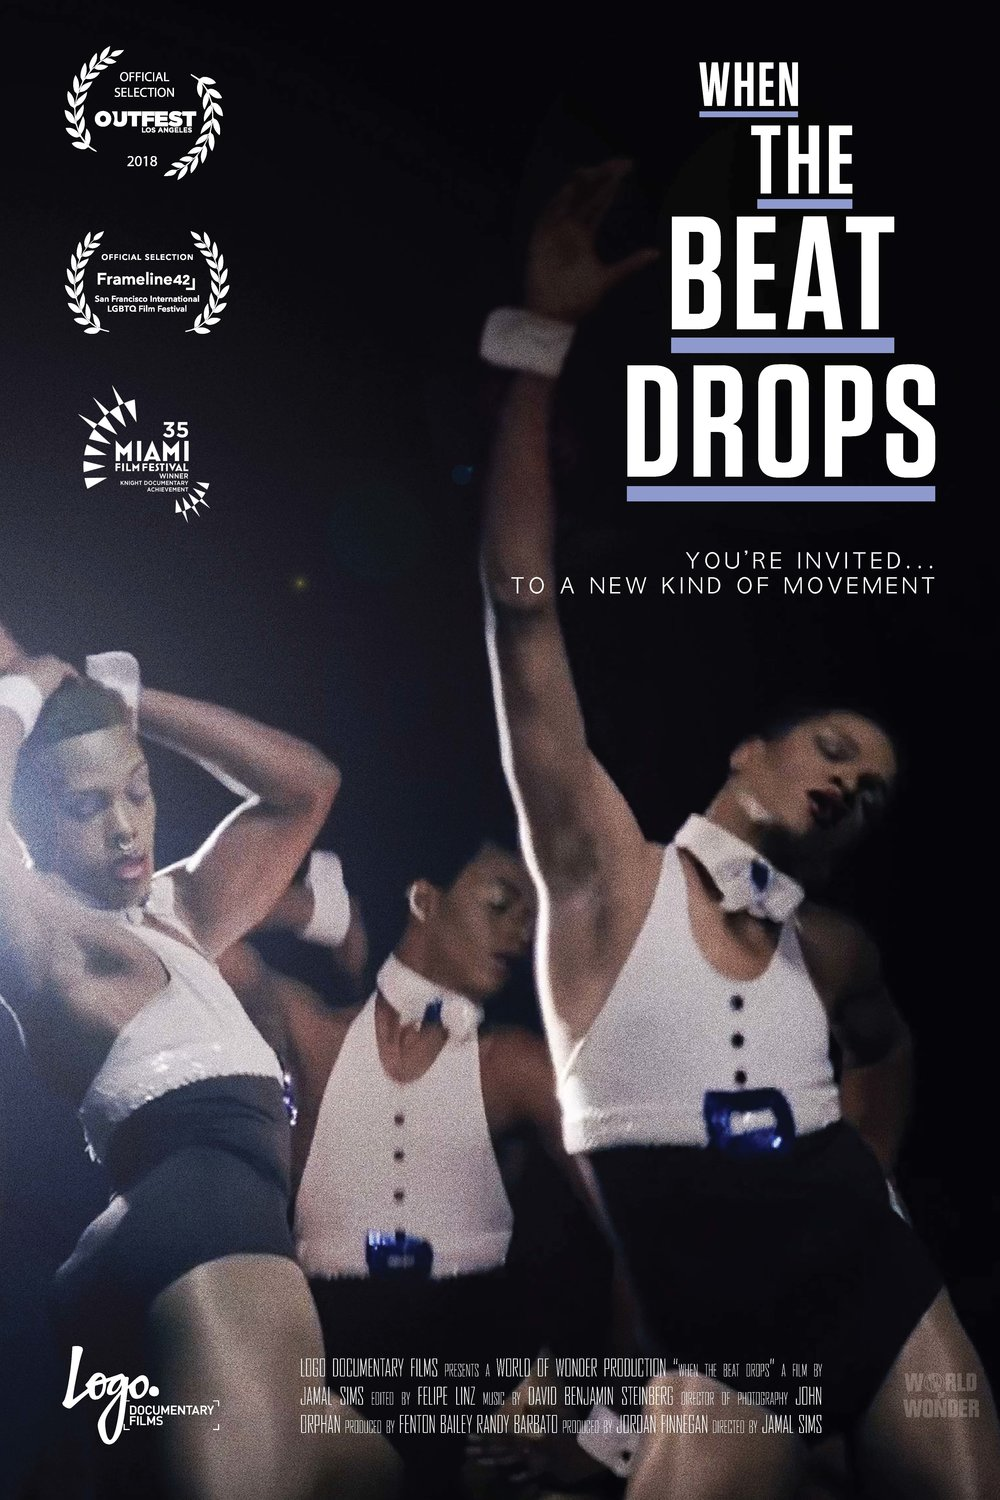 WHEN THE BEAT DROPS  / Featuring footage and stories from the men of Atlanta's bucking scene, director Jamal Sims gives a glimpse into the world of J-Setting as it grows into a national movement. Poster Design by Olufemi Leverett.